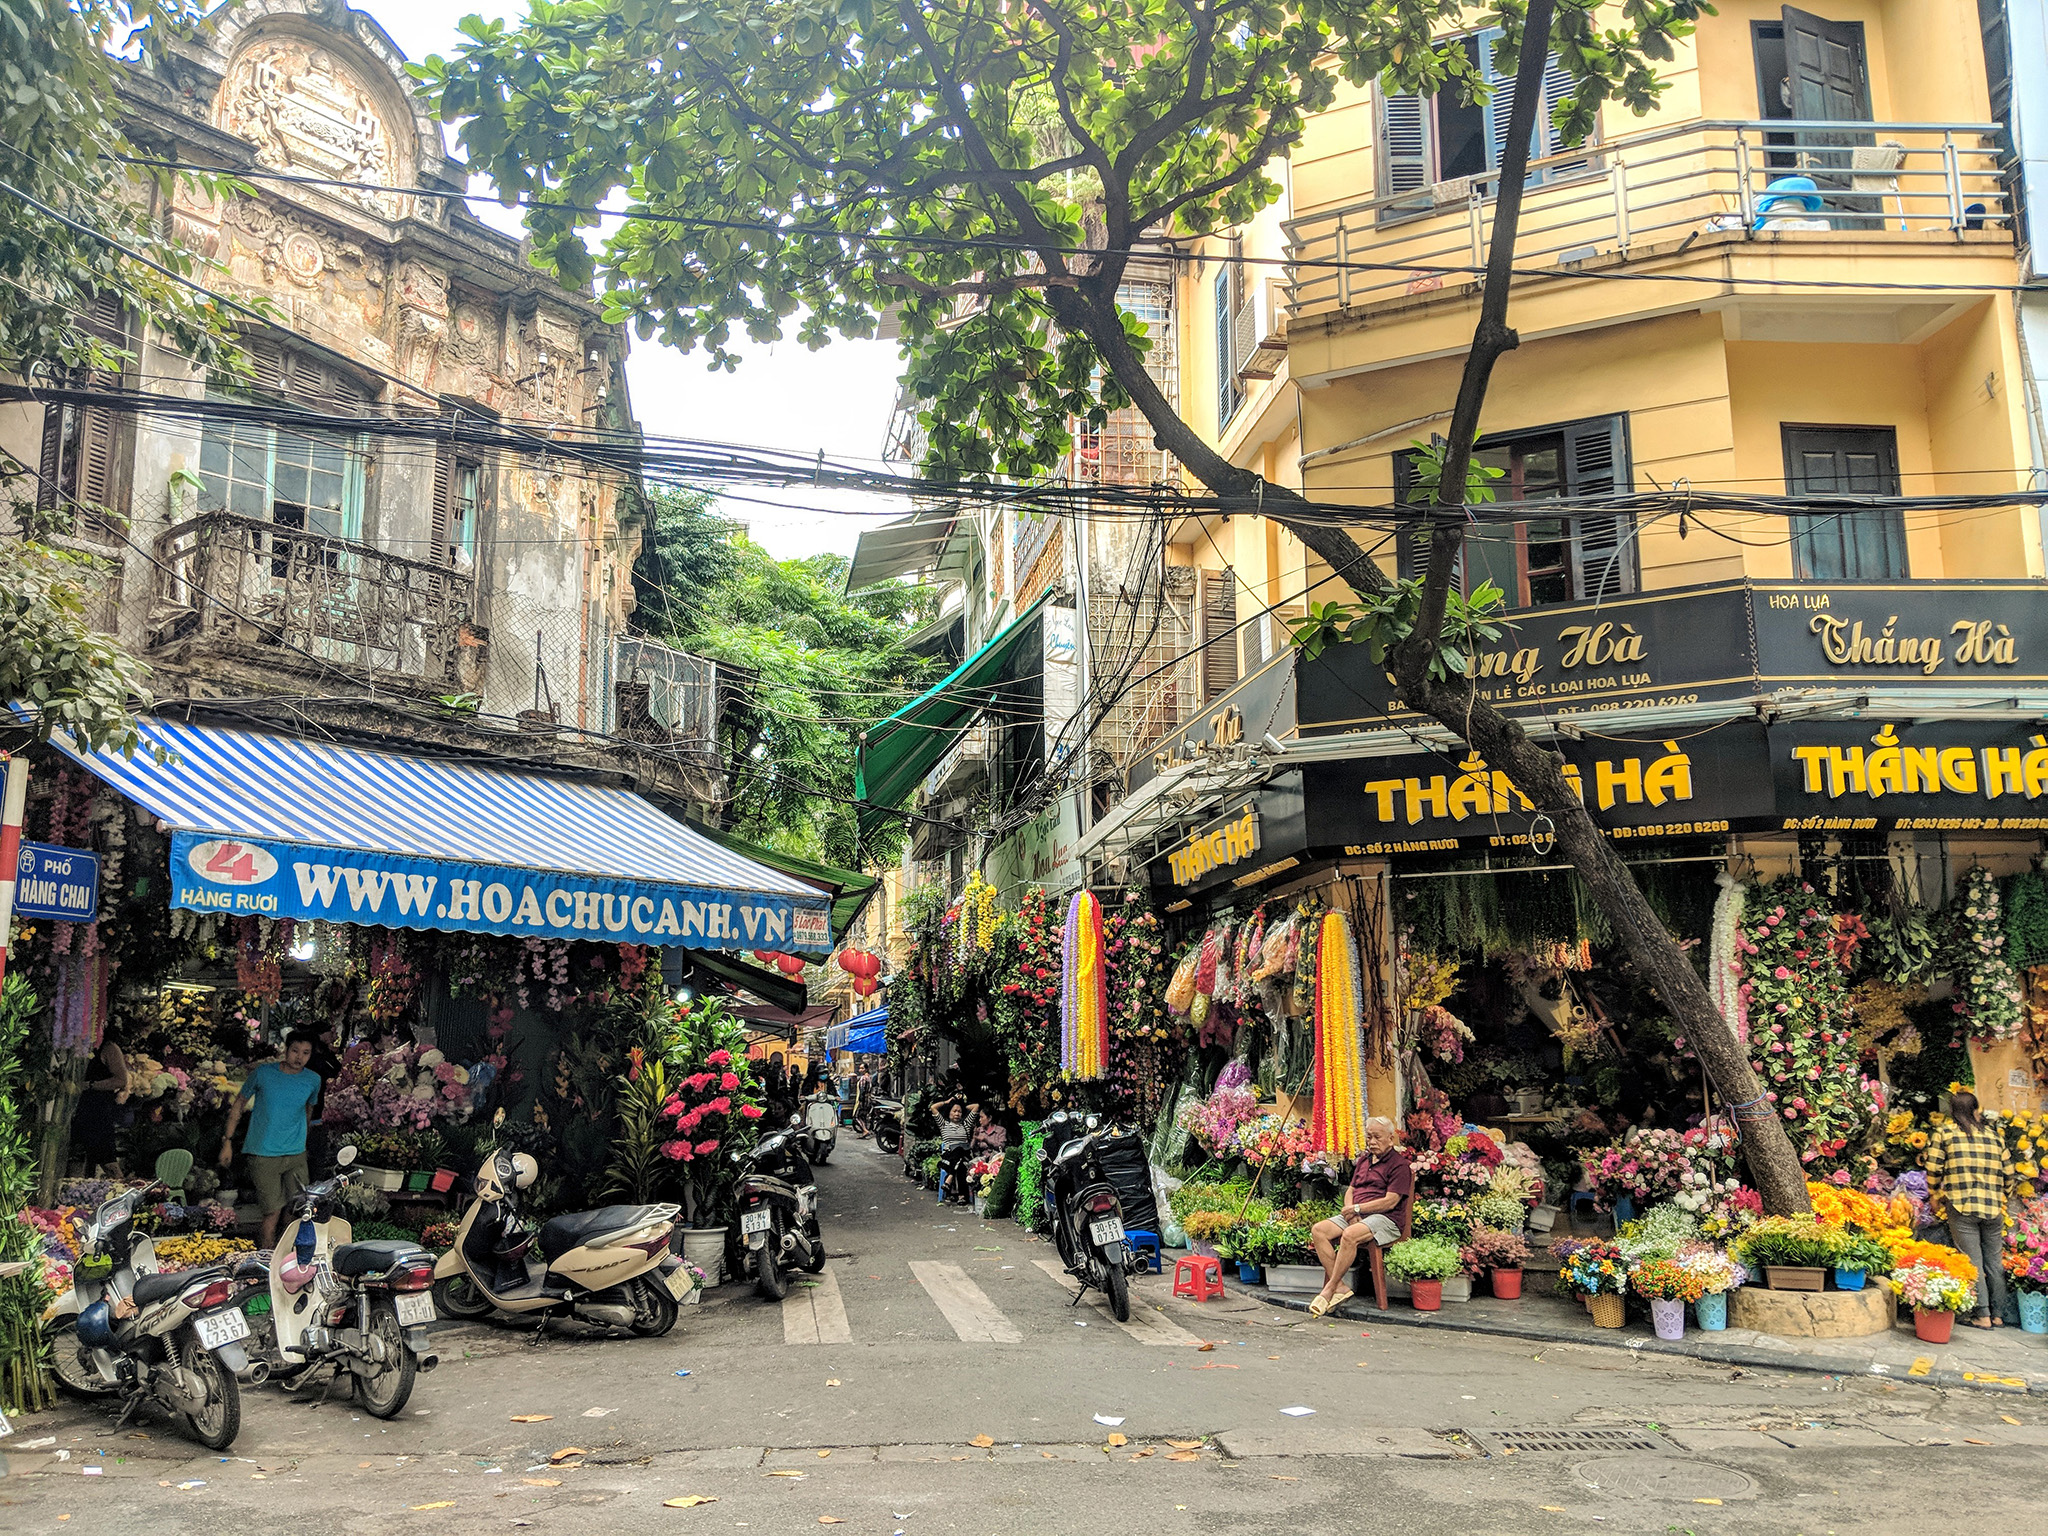 In the Old Quarter streets are organized by the products they sell- this one is covered in flower shops